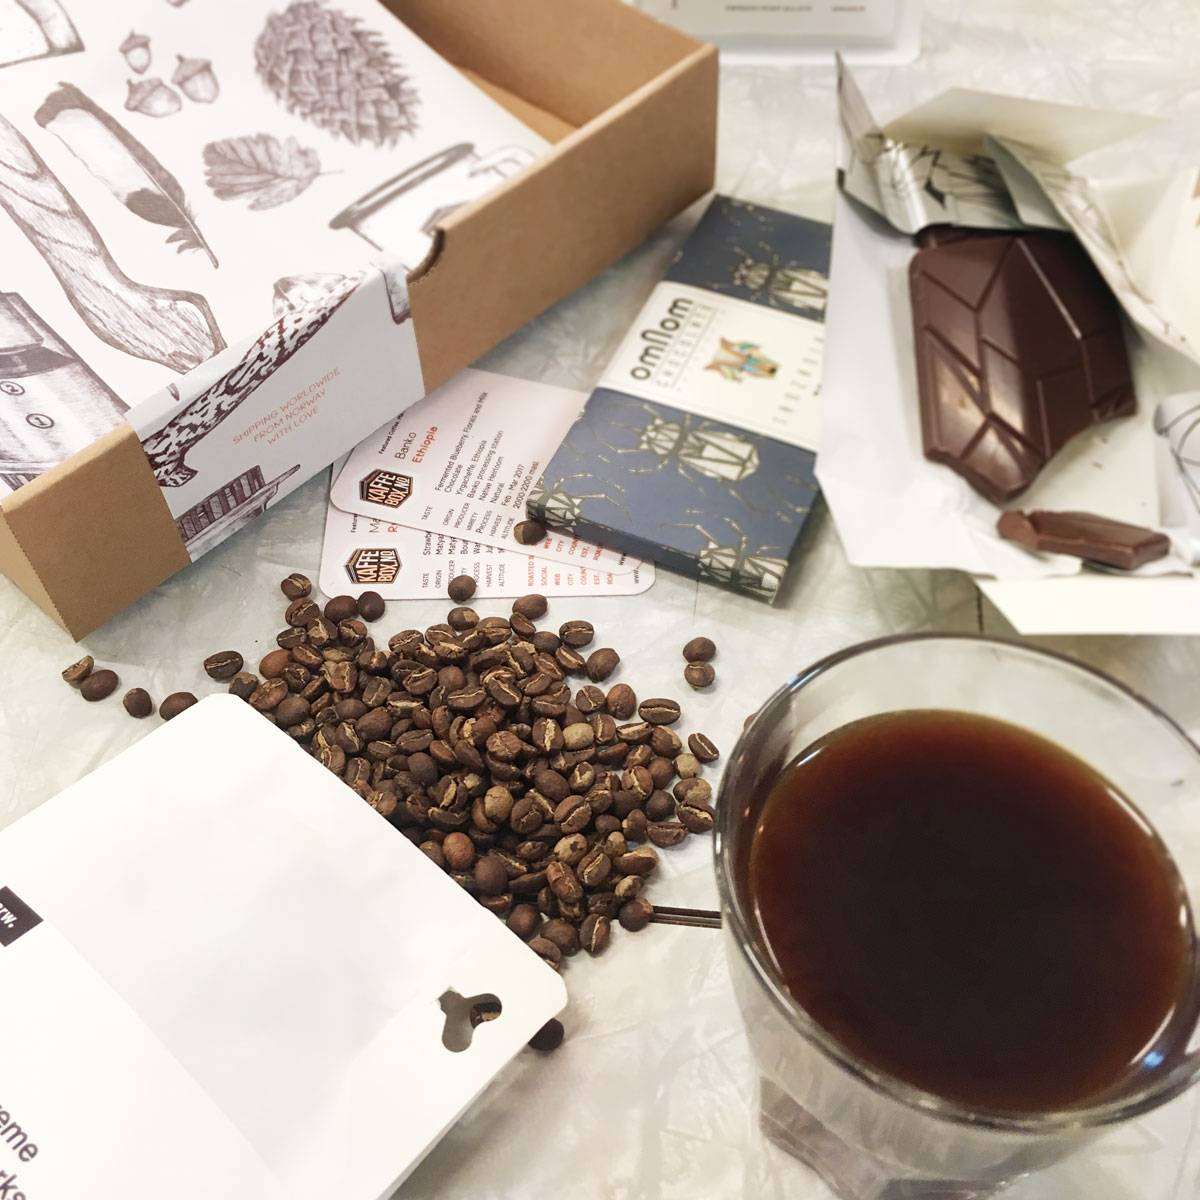 KaffeBox Chocolate Pairing Subscription - No coffee (only chocolate), 1 bar